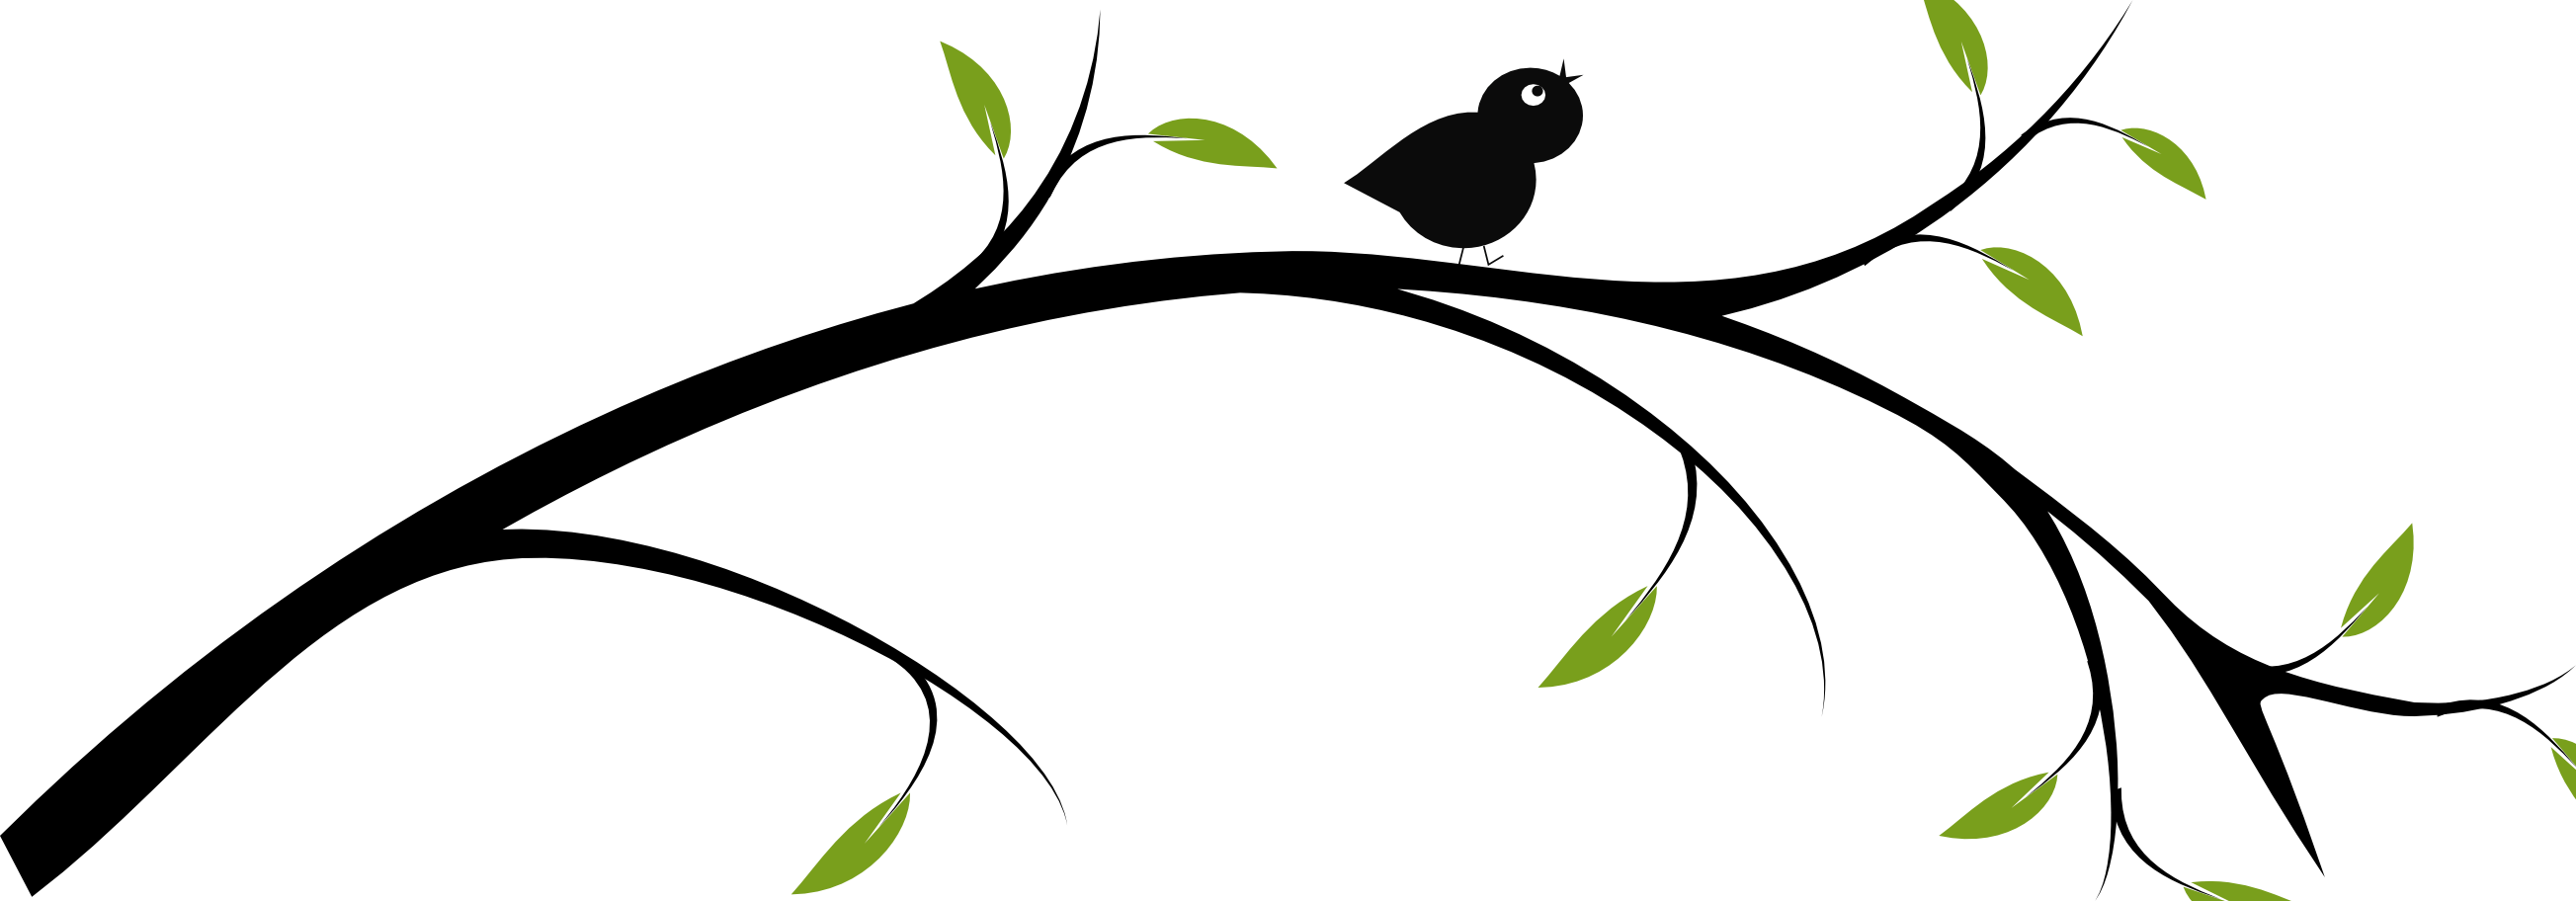 Vines Clipart Bird Vines Bird Transparent Free For